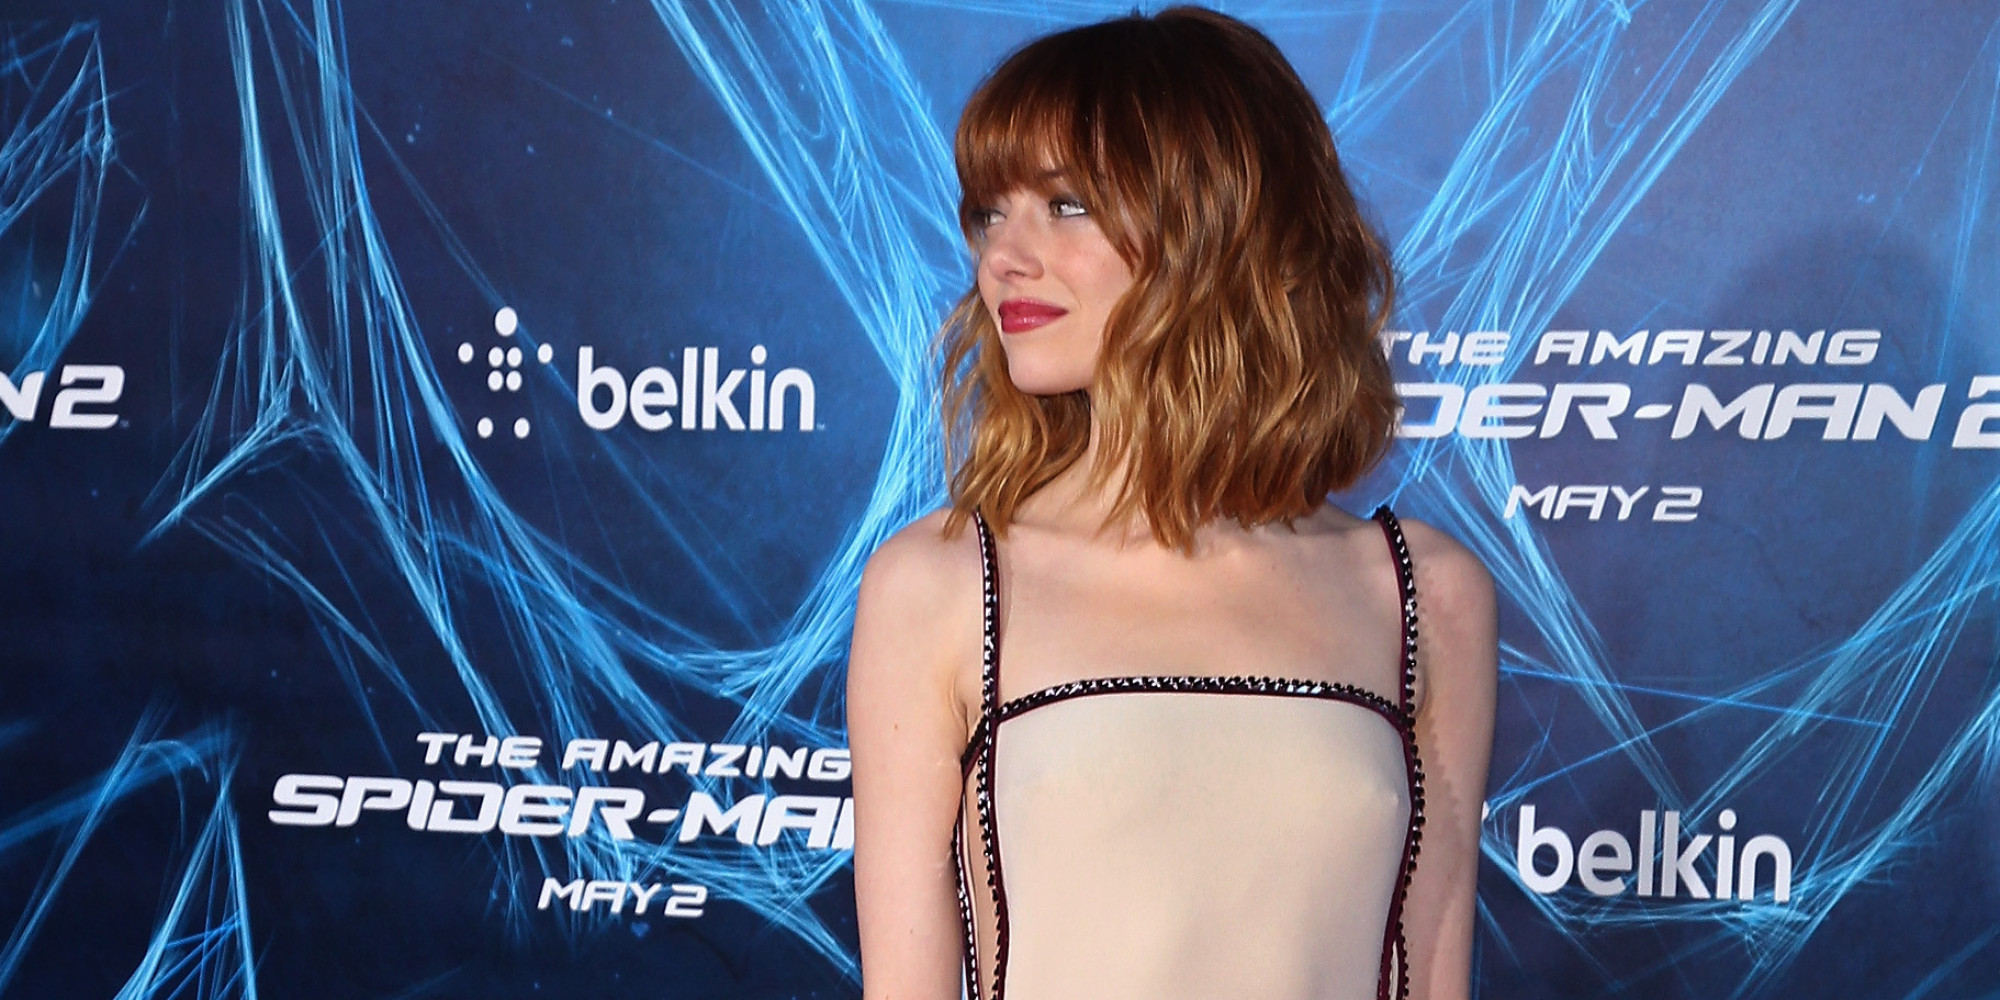 Emma stone naked selfie related pics: www.sexpornimages.com/emma/emma-stone-naked-selfie/19c70.html